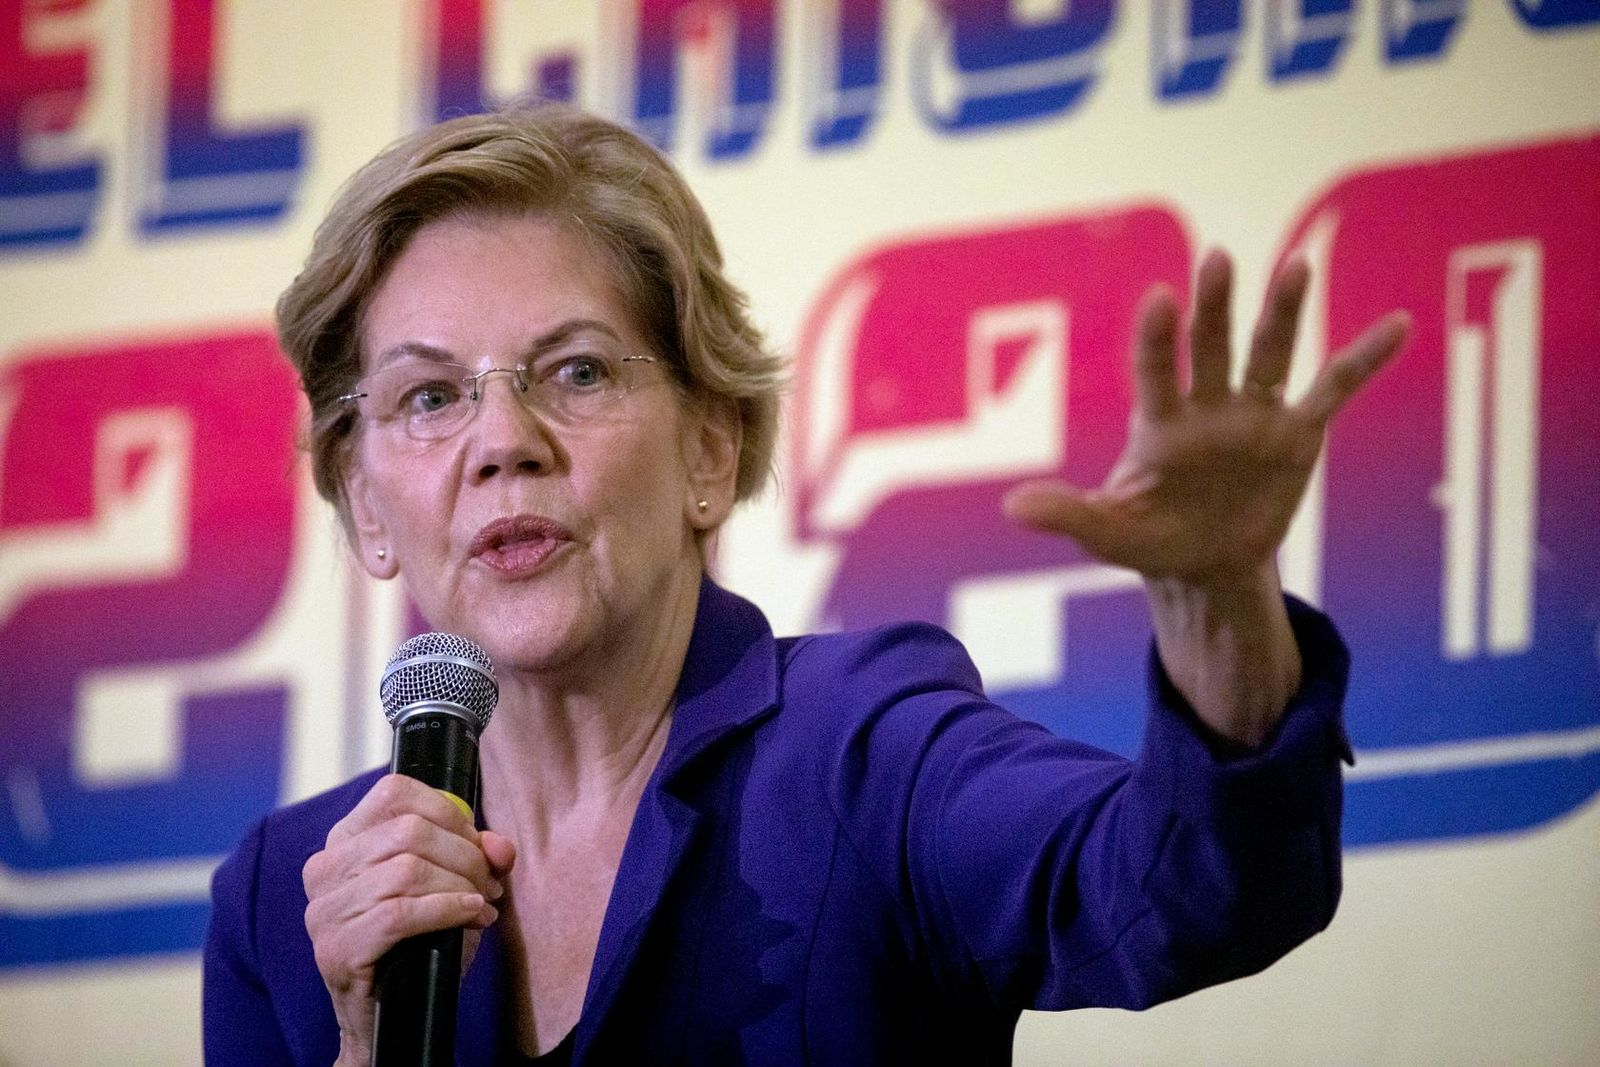 Democratic presidential candidate and Sen. Elizabeth Warren, D-Mass., speaks at Mijente's El Chisme 2020 election event in Raleigh, N.C. Friday, Nov 8, 2019. (Bryan Cereijo/The News & Observer via AP)